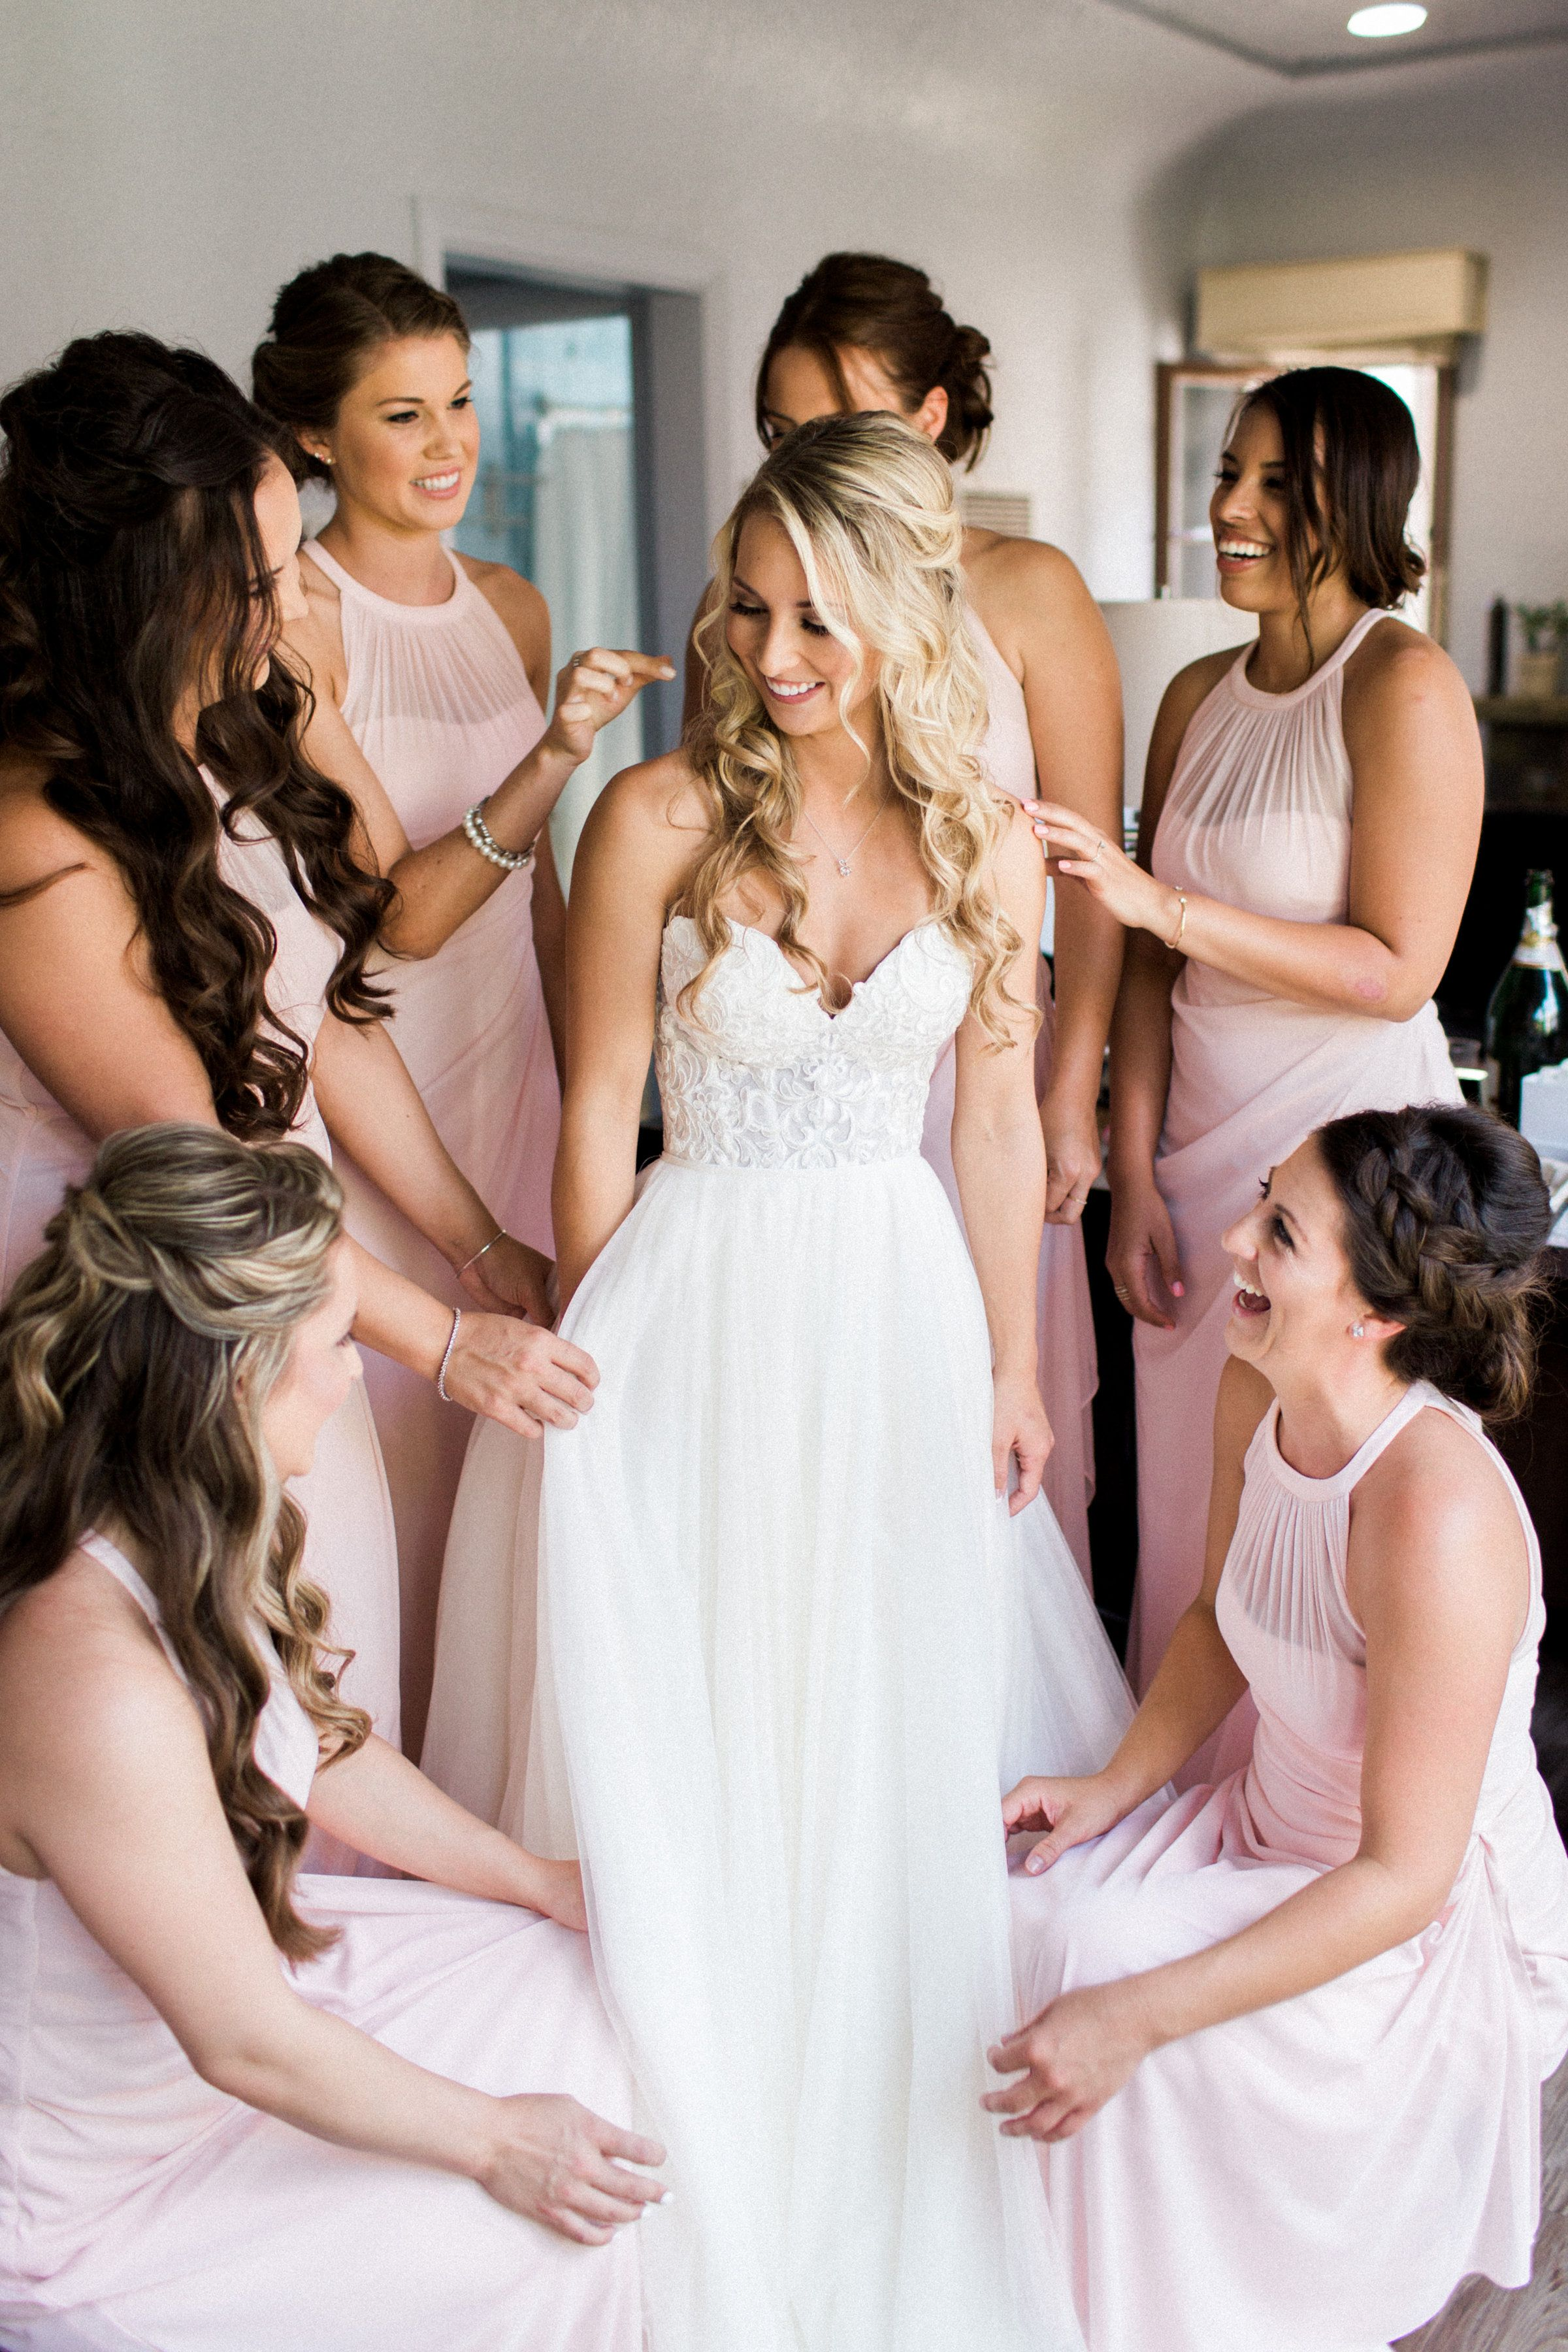 c7b9d1f9fec getting wedding ready with all your besties in matching dresses ...